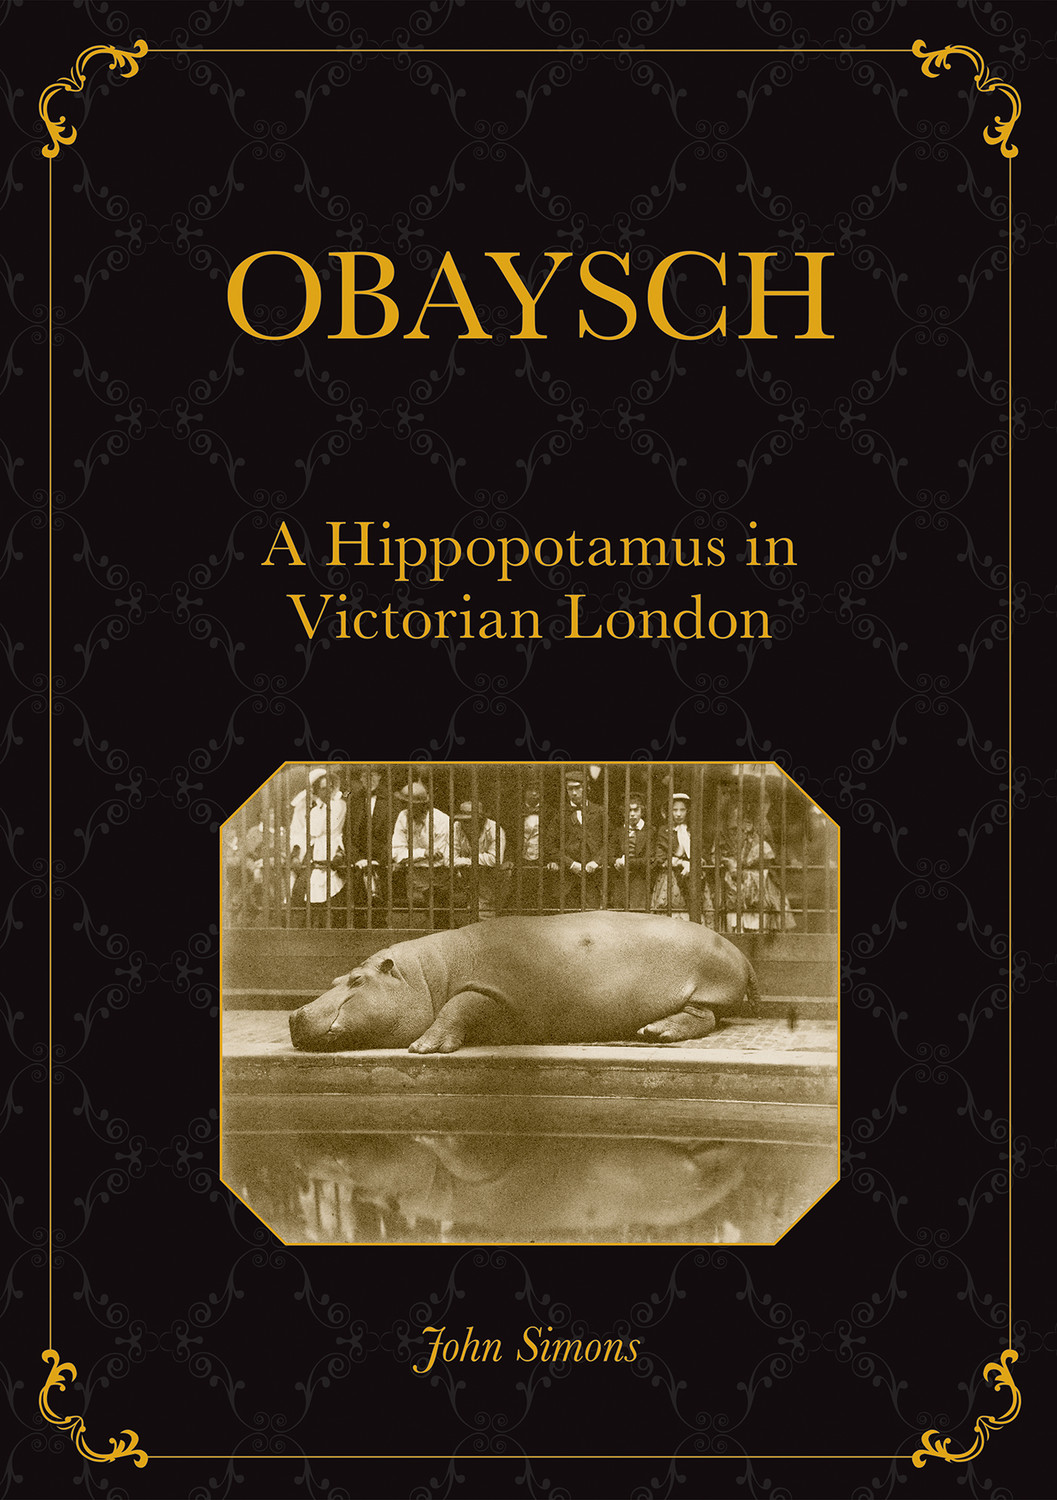 Obaysch: A Hippopotamus in Victorian London